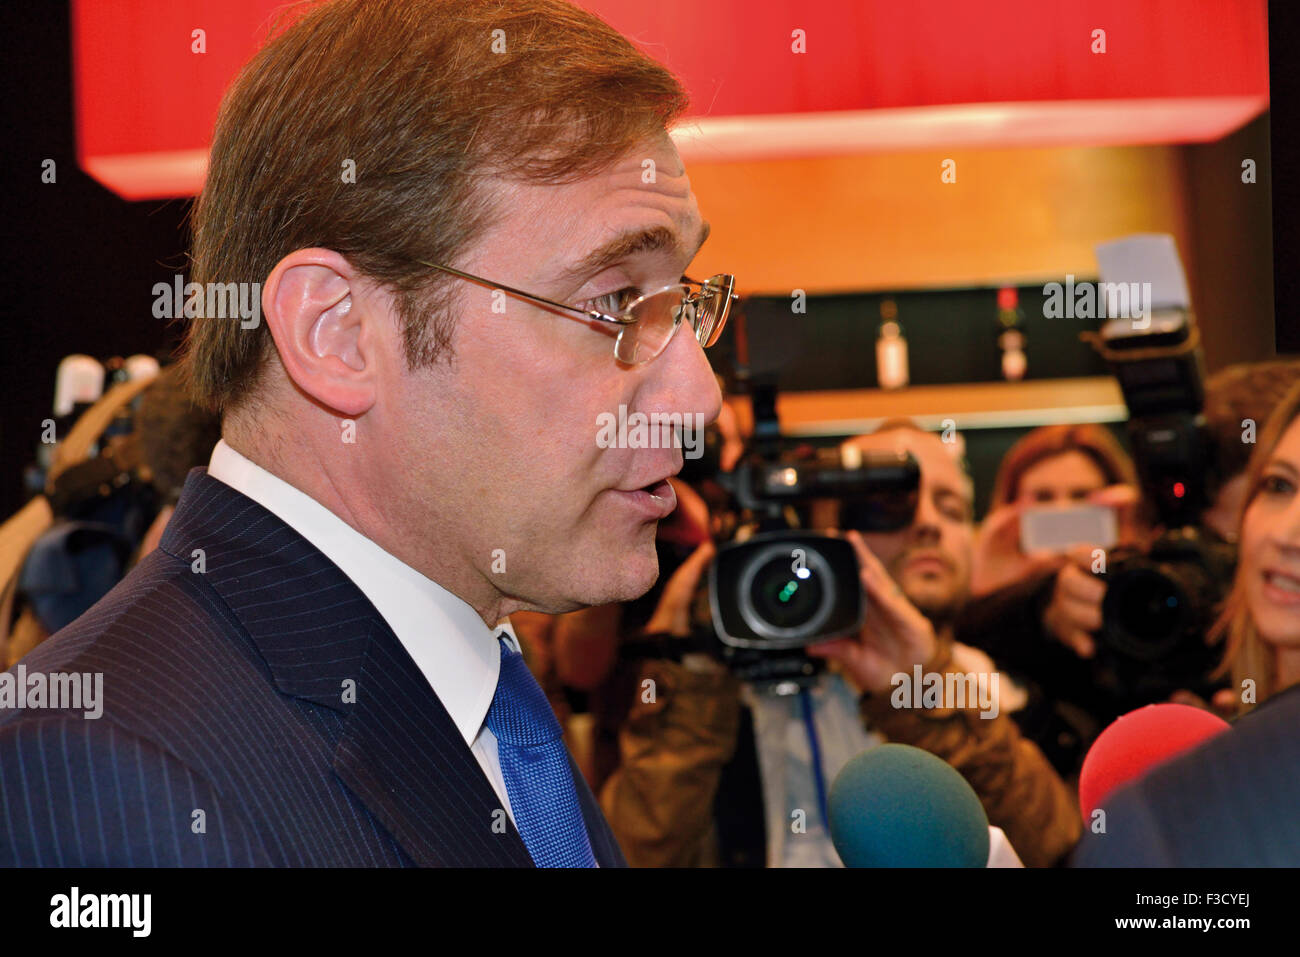 Portugal: Prime Minister Pedro Passos Coelho interviewed by media - Stock Image